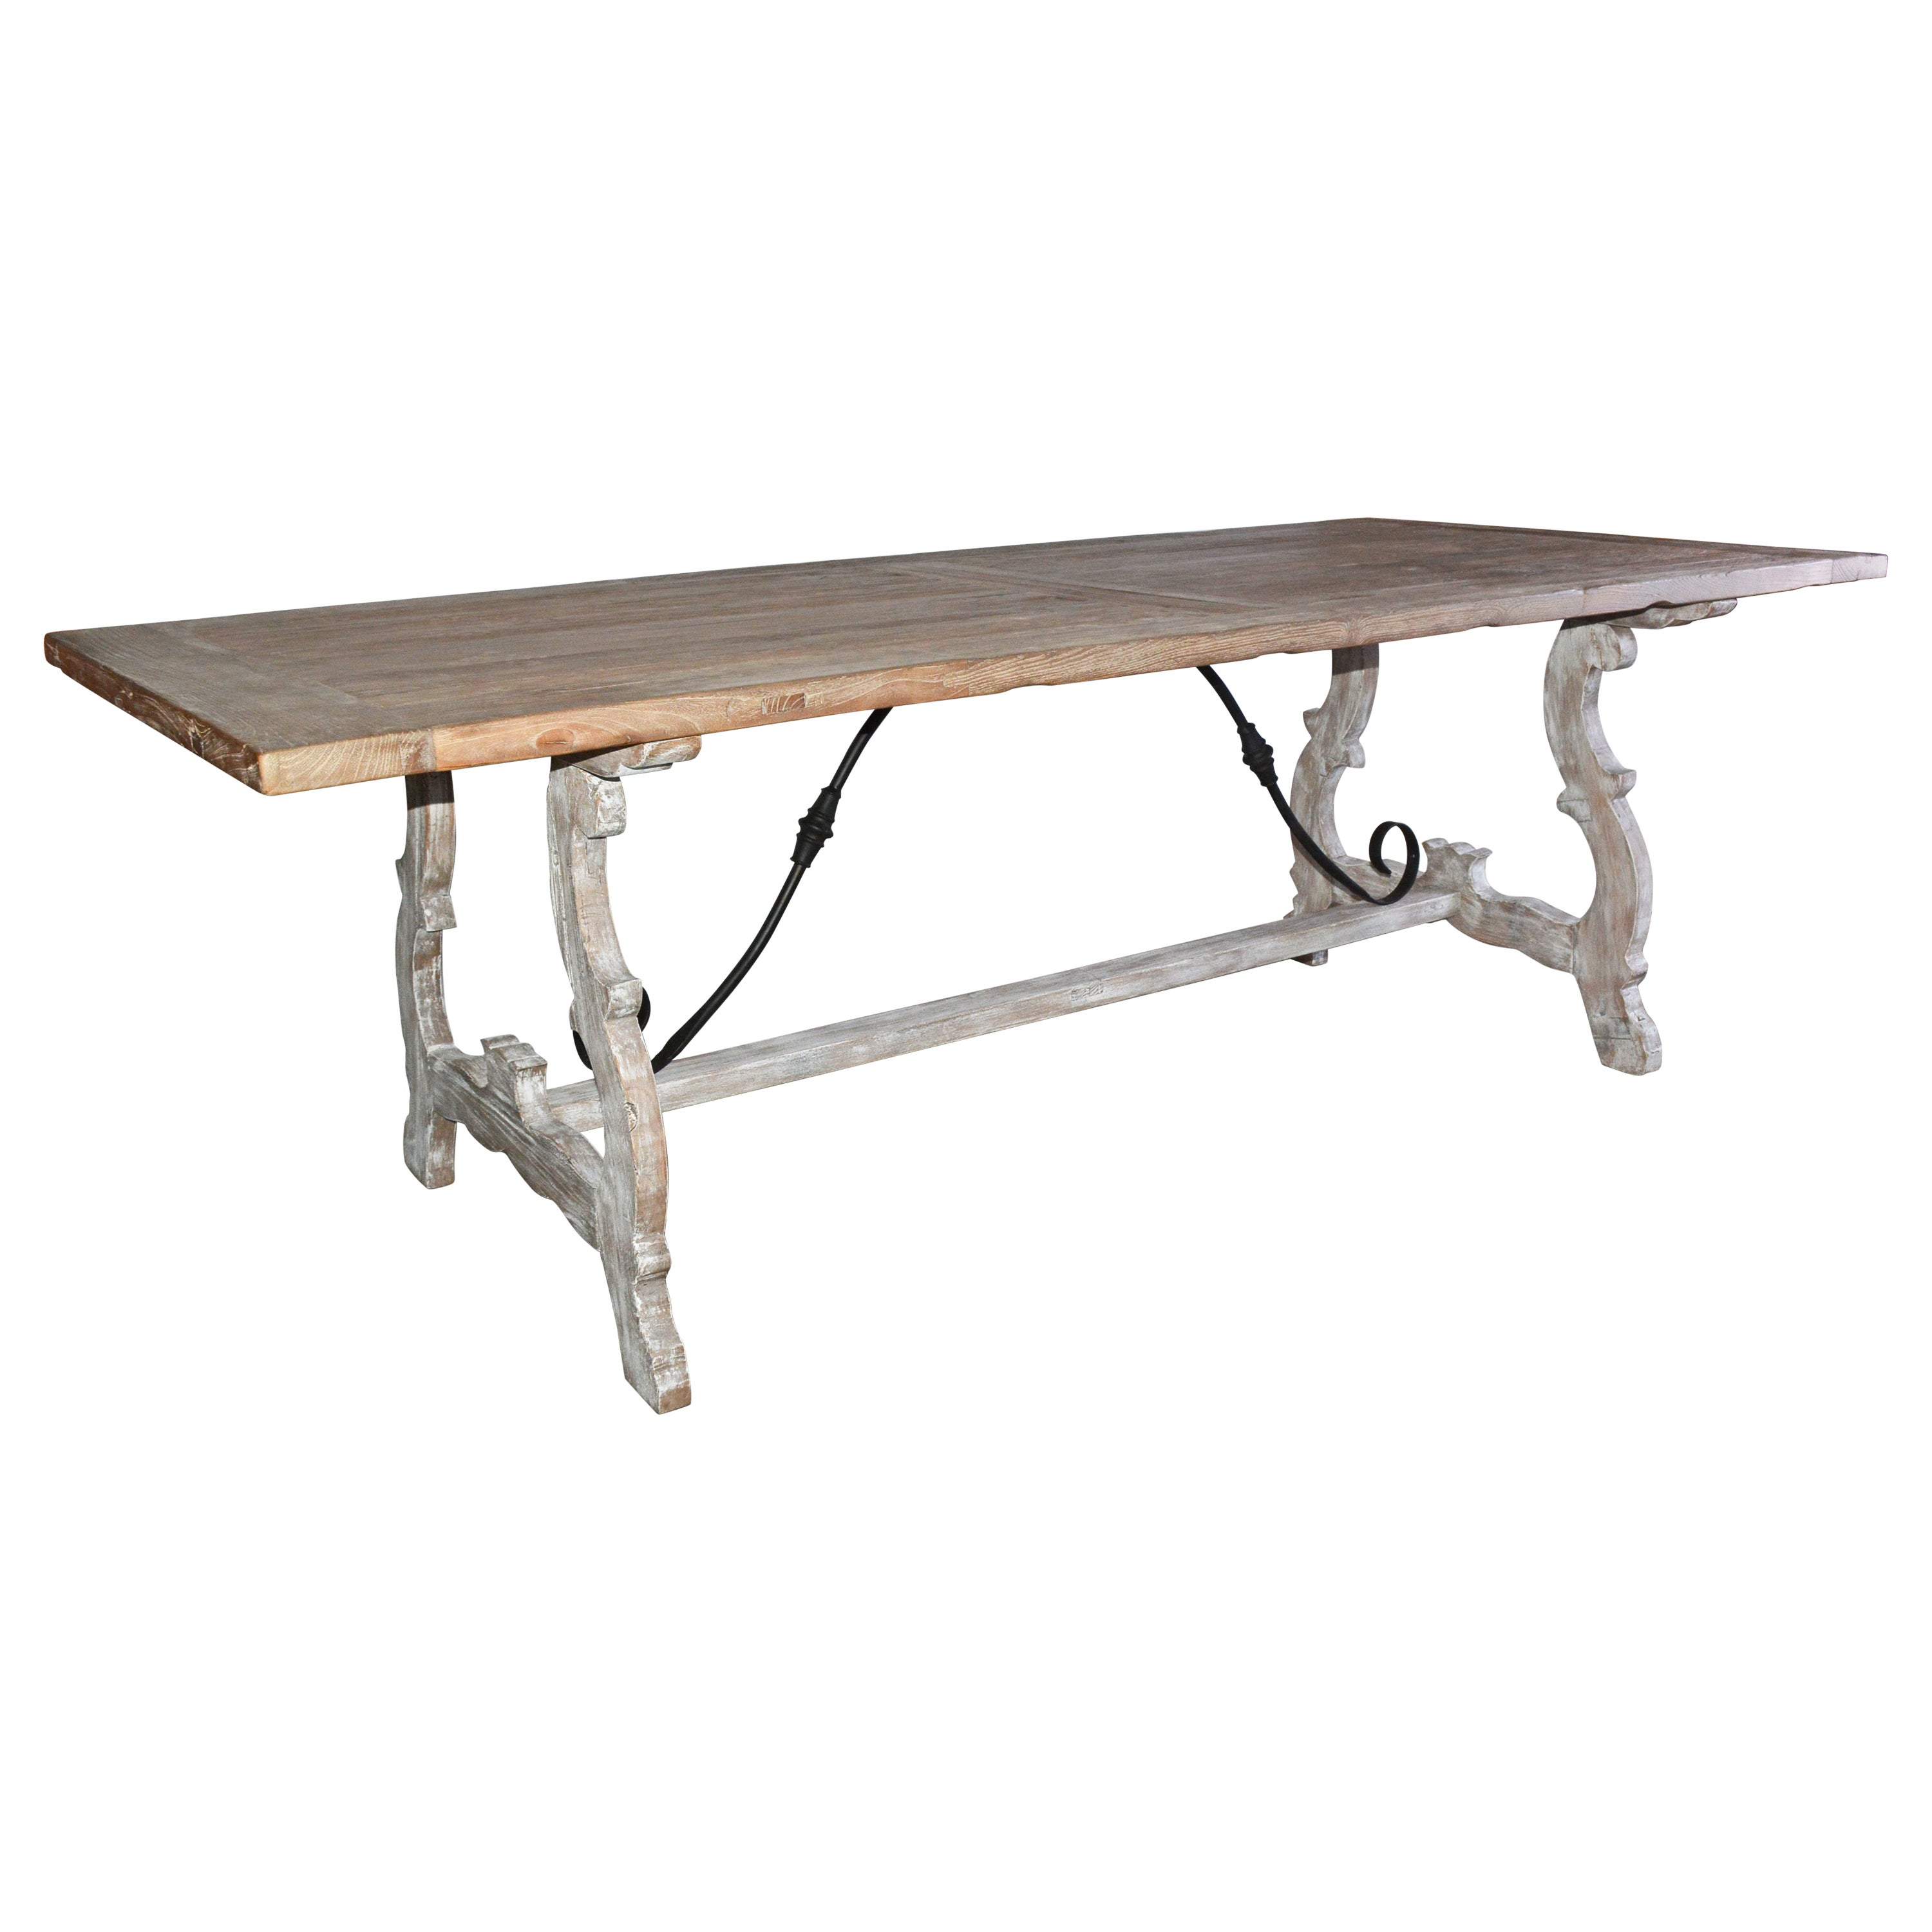 Spanish Renaissance Style Country Dining Table